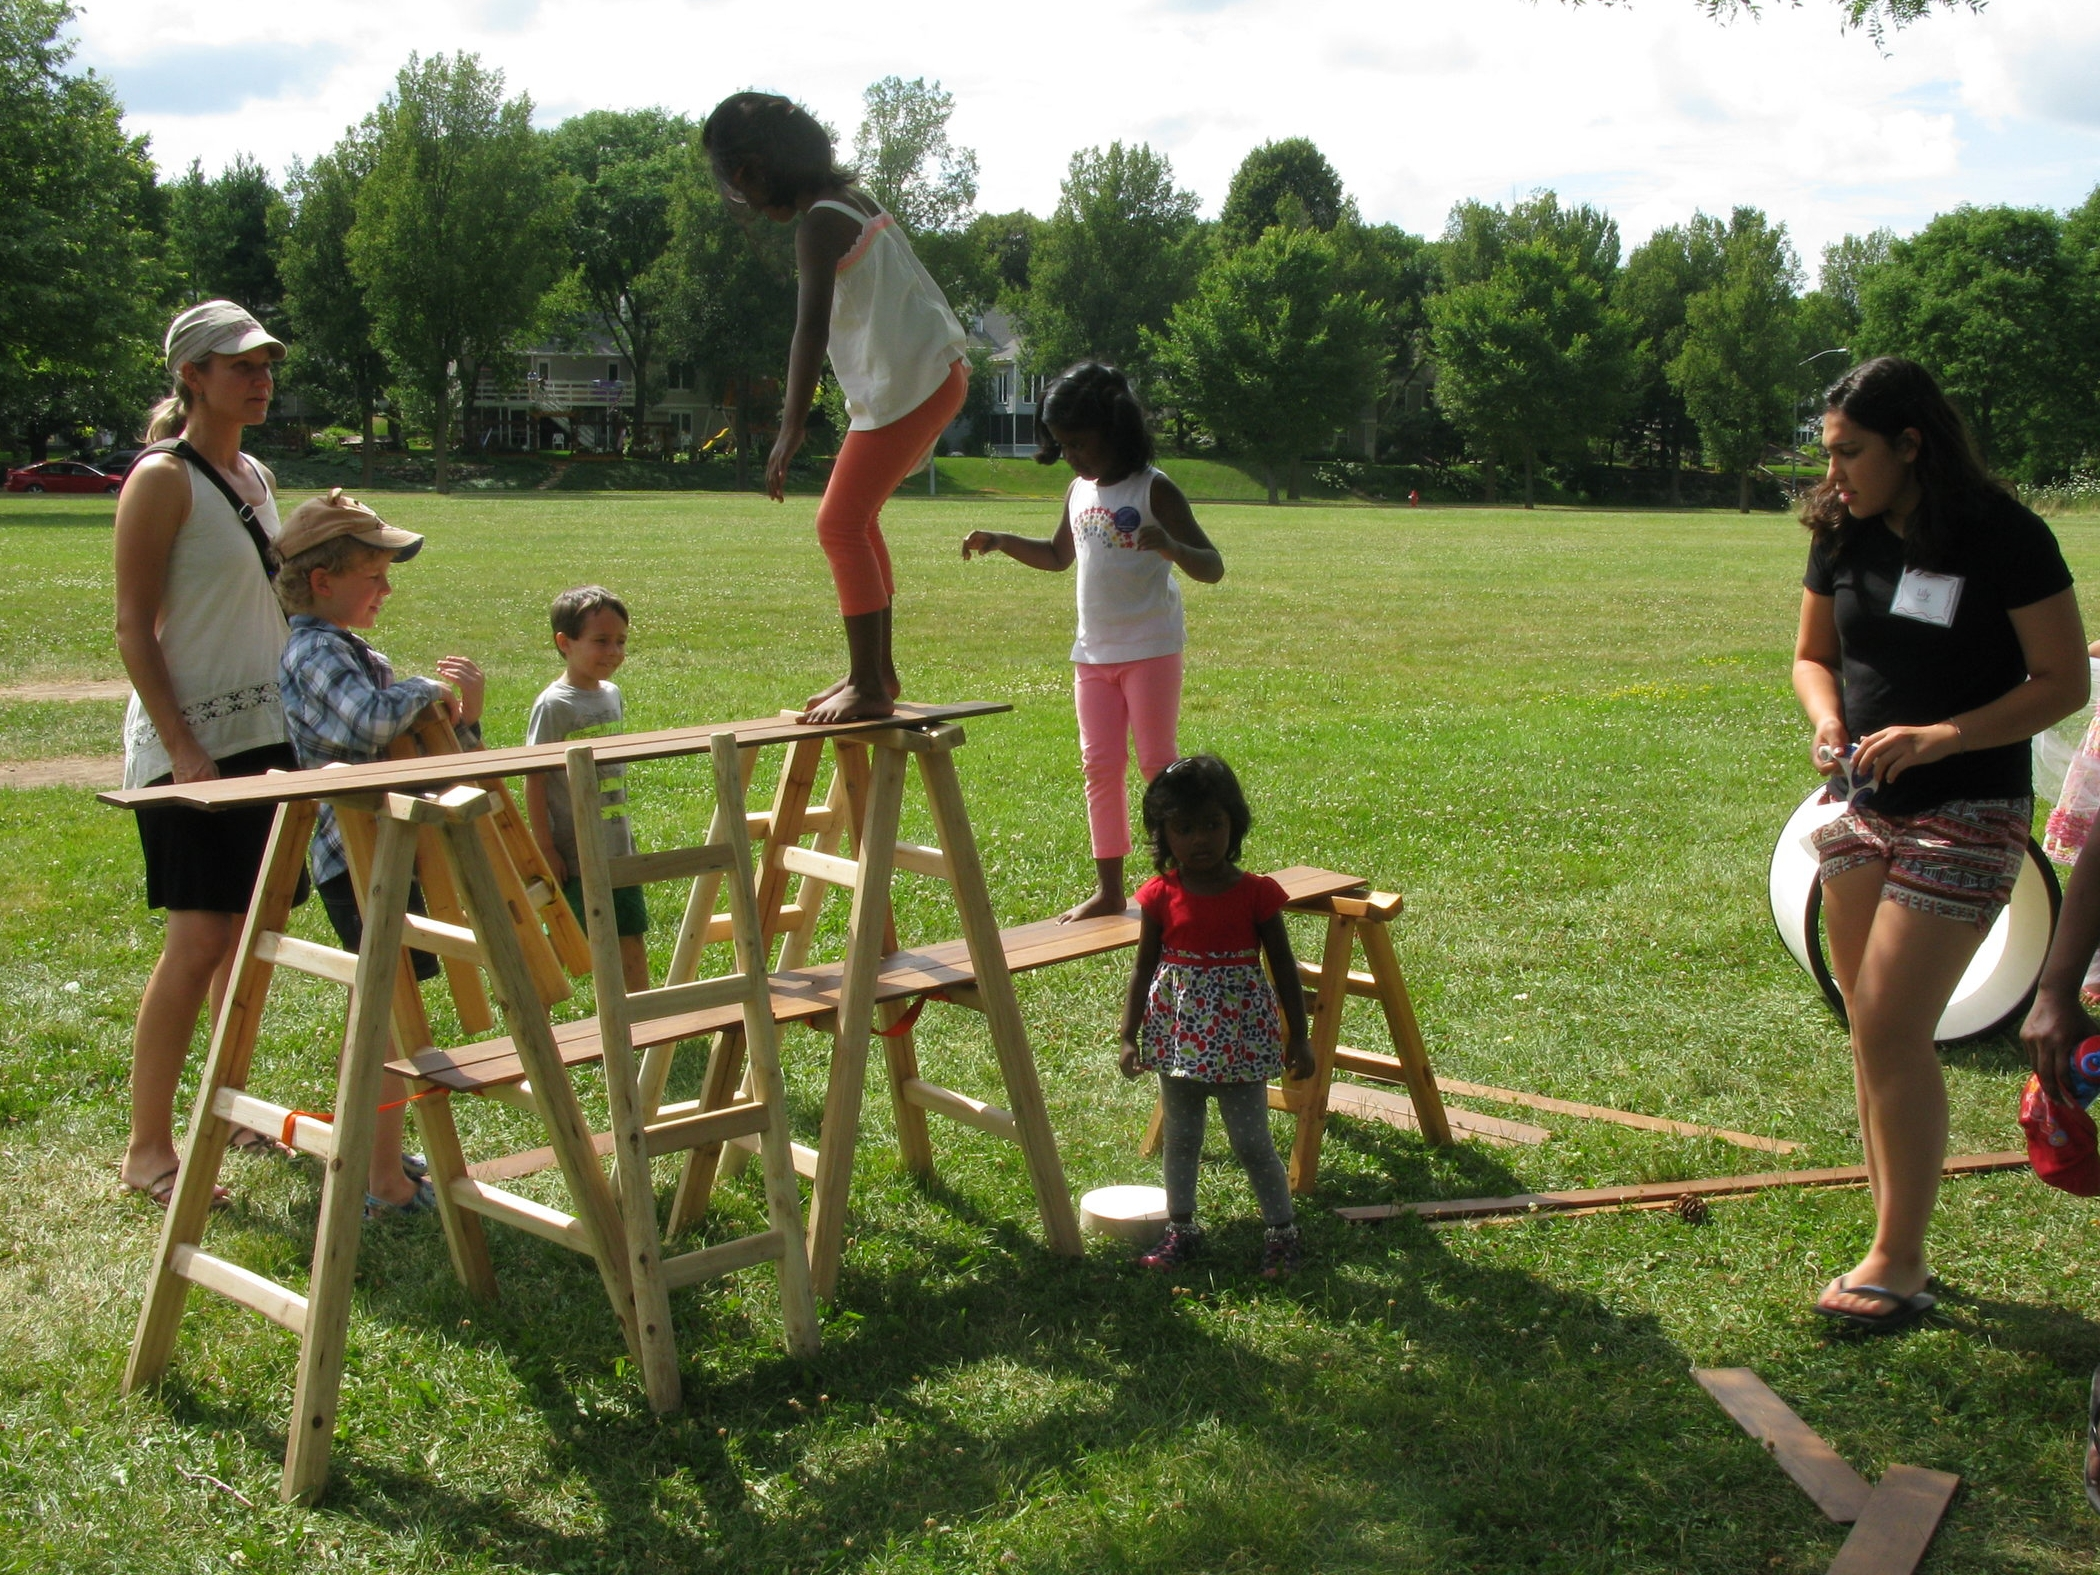 Parents support their children's experience of True Play at Madison Public Library's Anji Play drop-in program.